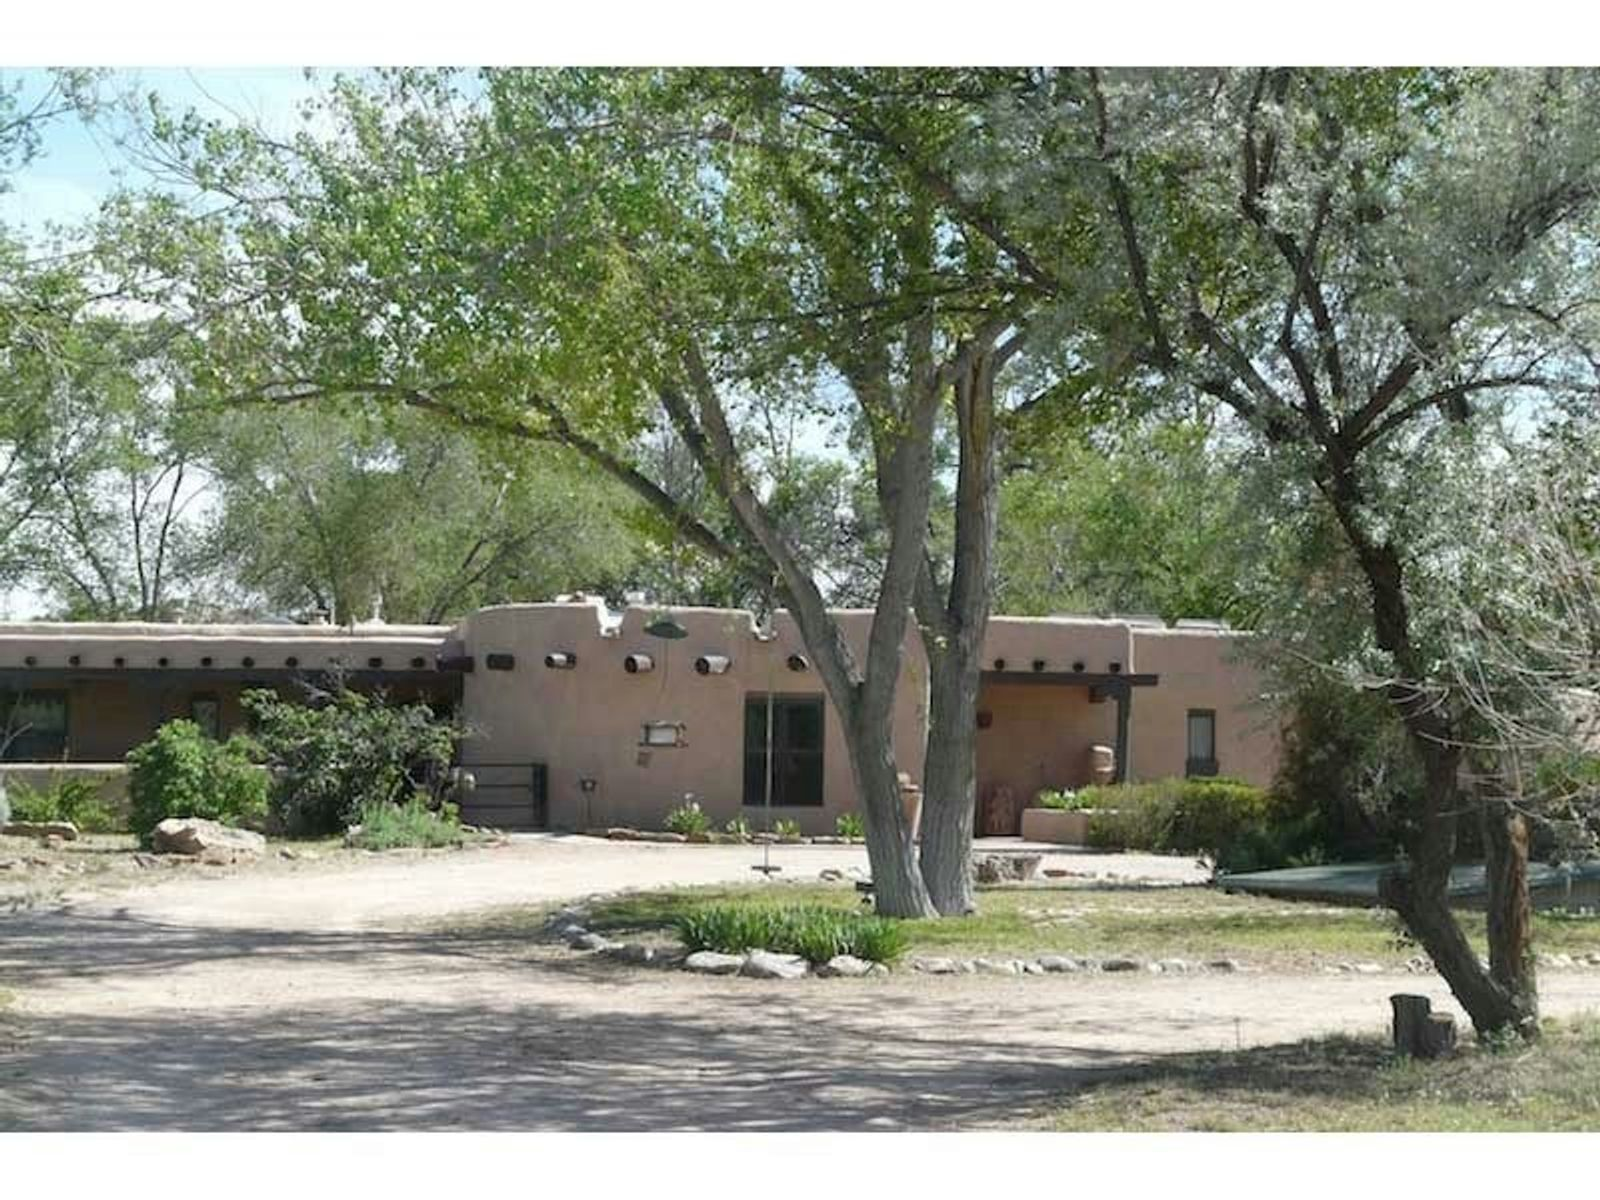 36 ABC County Road 101-B, Santa Fe NM Single Family Home - Santa Fe Real Estate